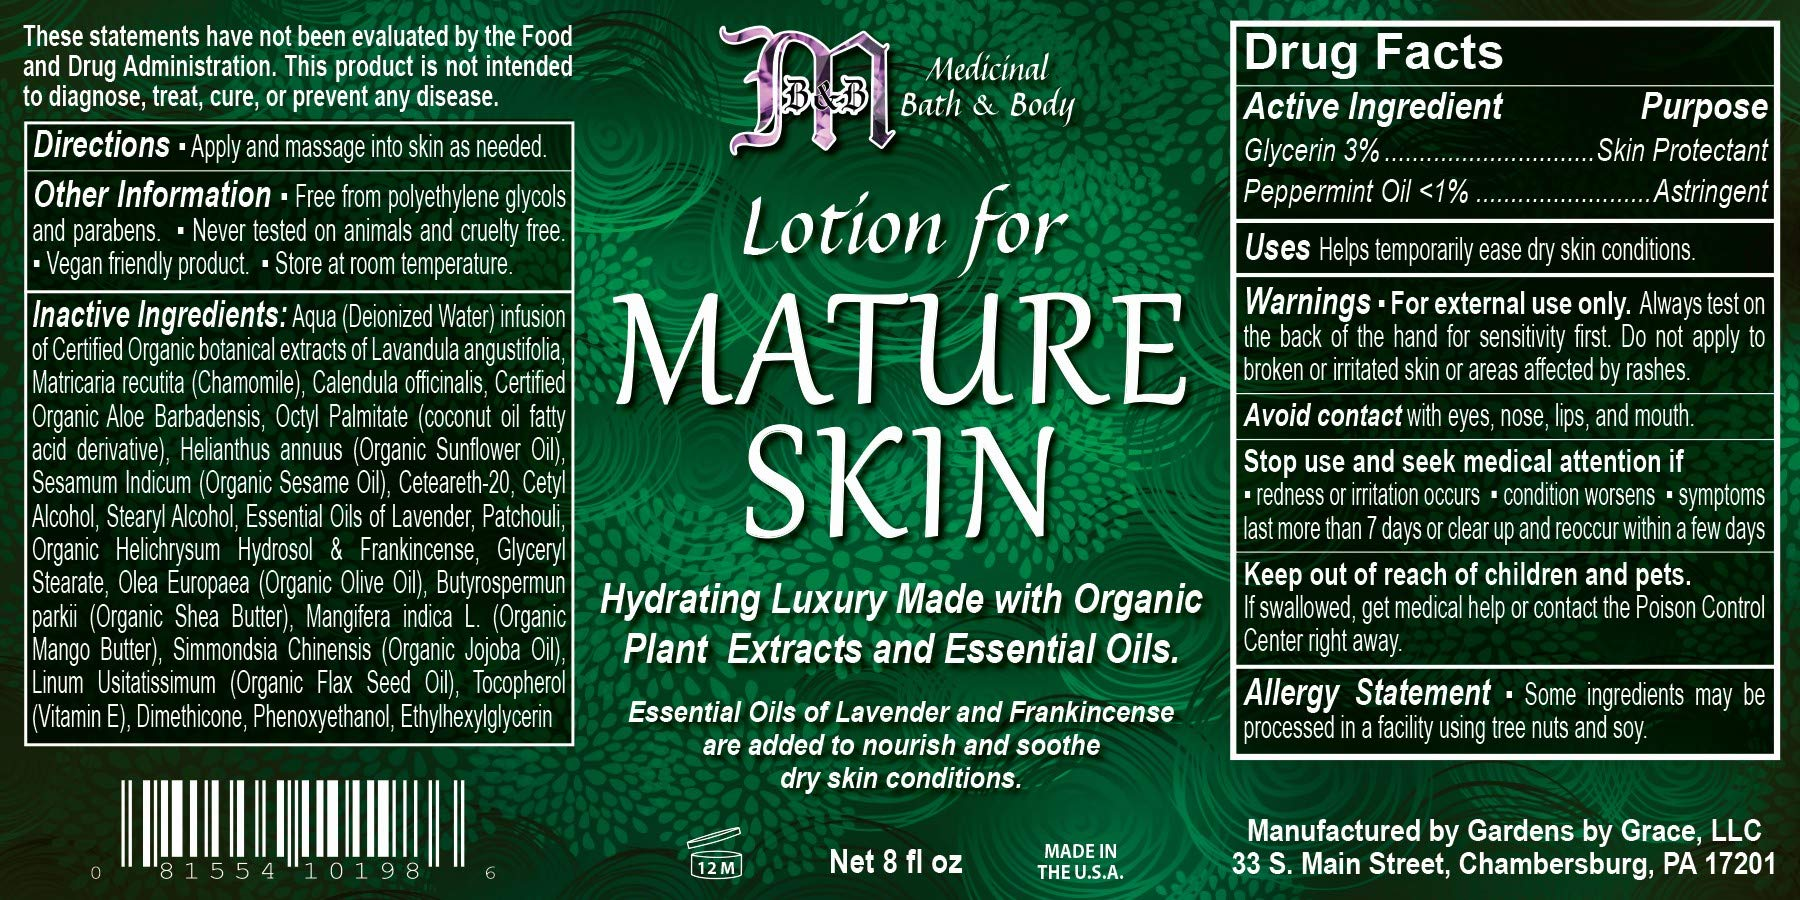 Lotion for Mature Skin Care | Natural Anti Aging Treatment for Daytime,  Night | Helps Repair, Rejuvenate for Face, Body | Organic, Vegan, 8oz